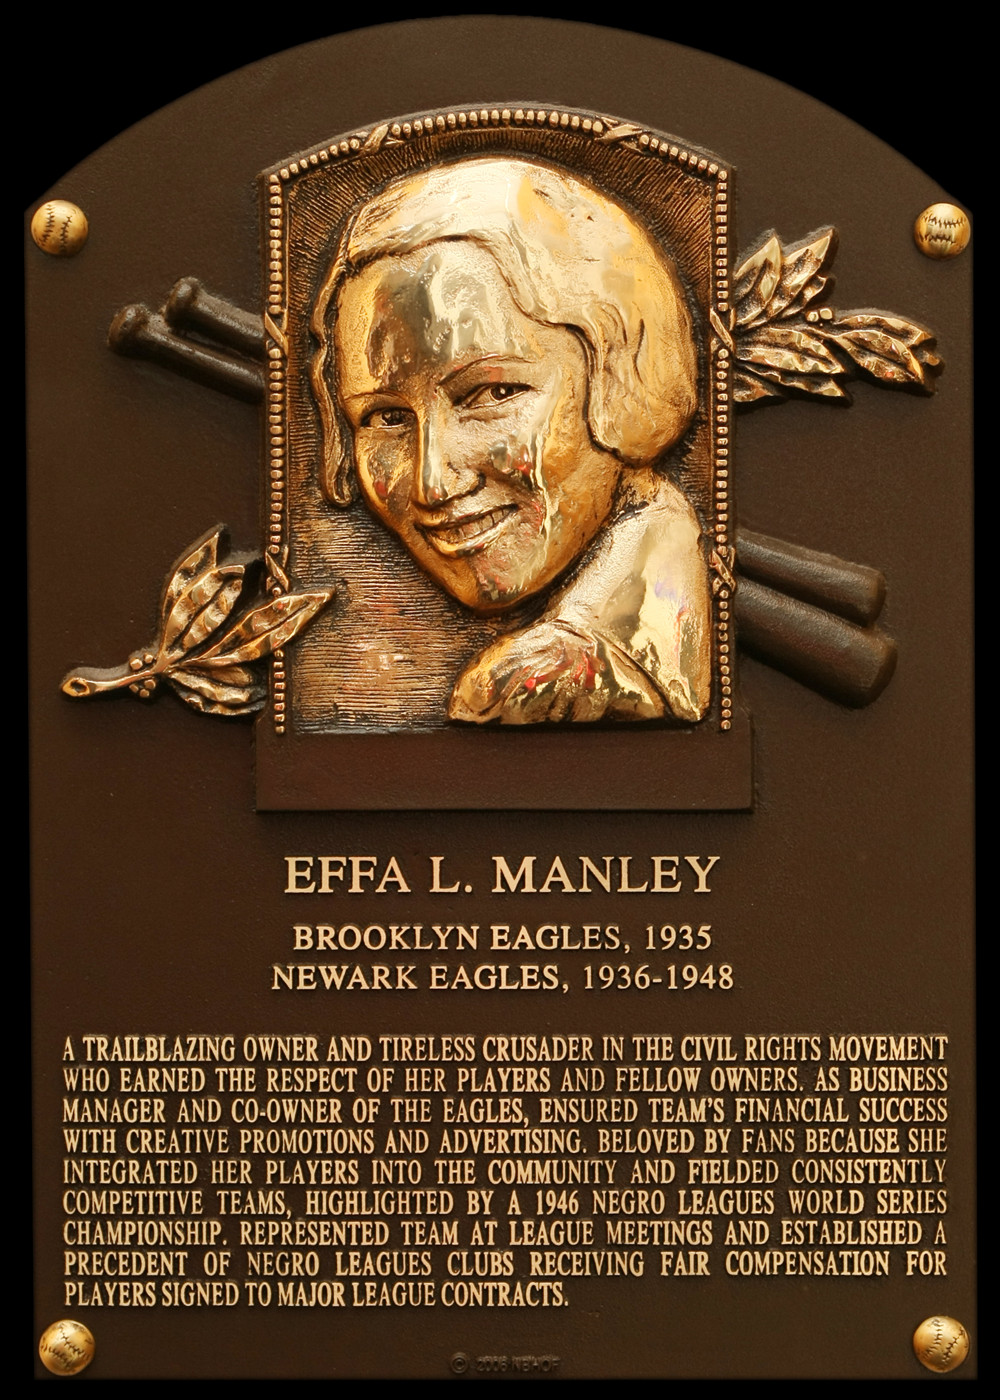 Effa Manley's Hall of Fame Plaque